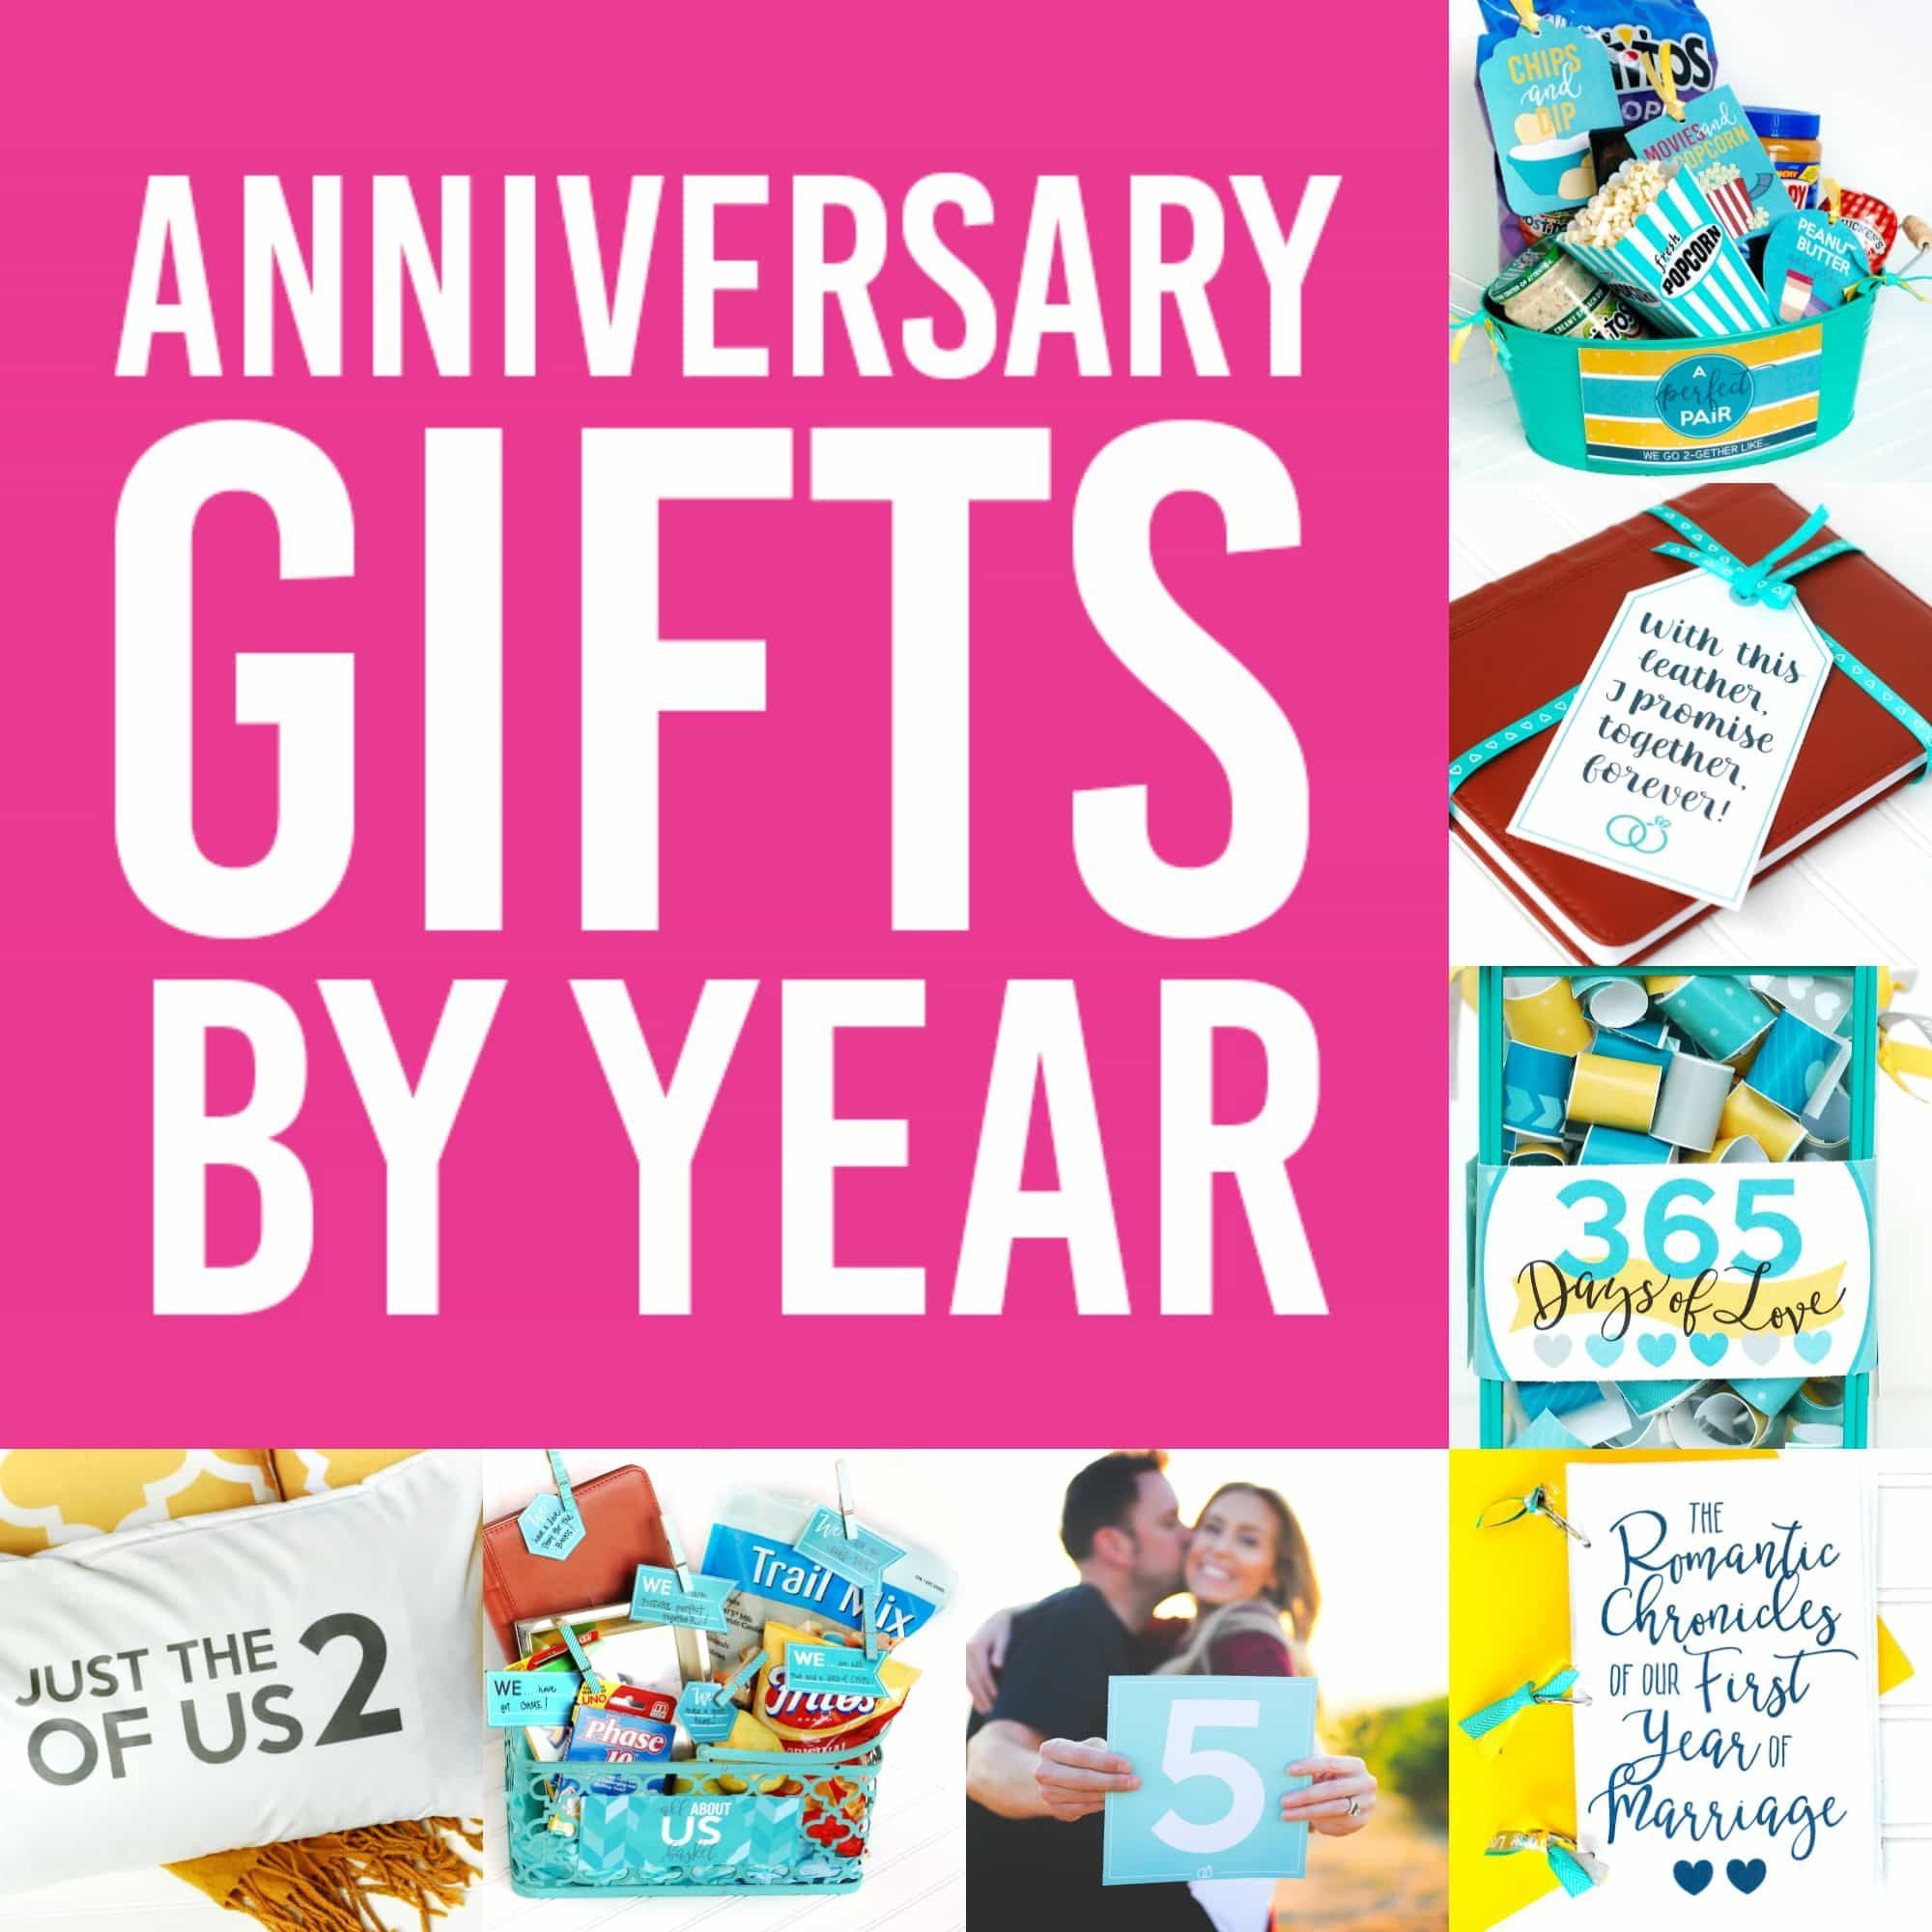 4th Wedding Anniversary Gift Ideas: Anniversary Gifts By Year For Spouses - From